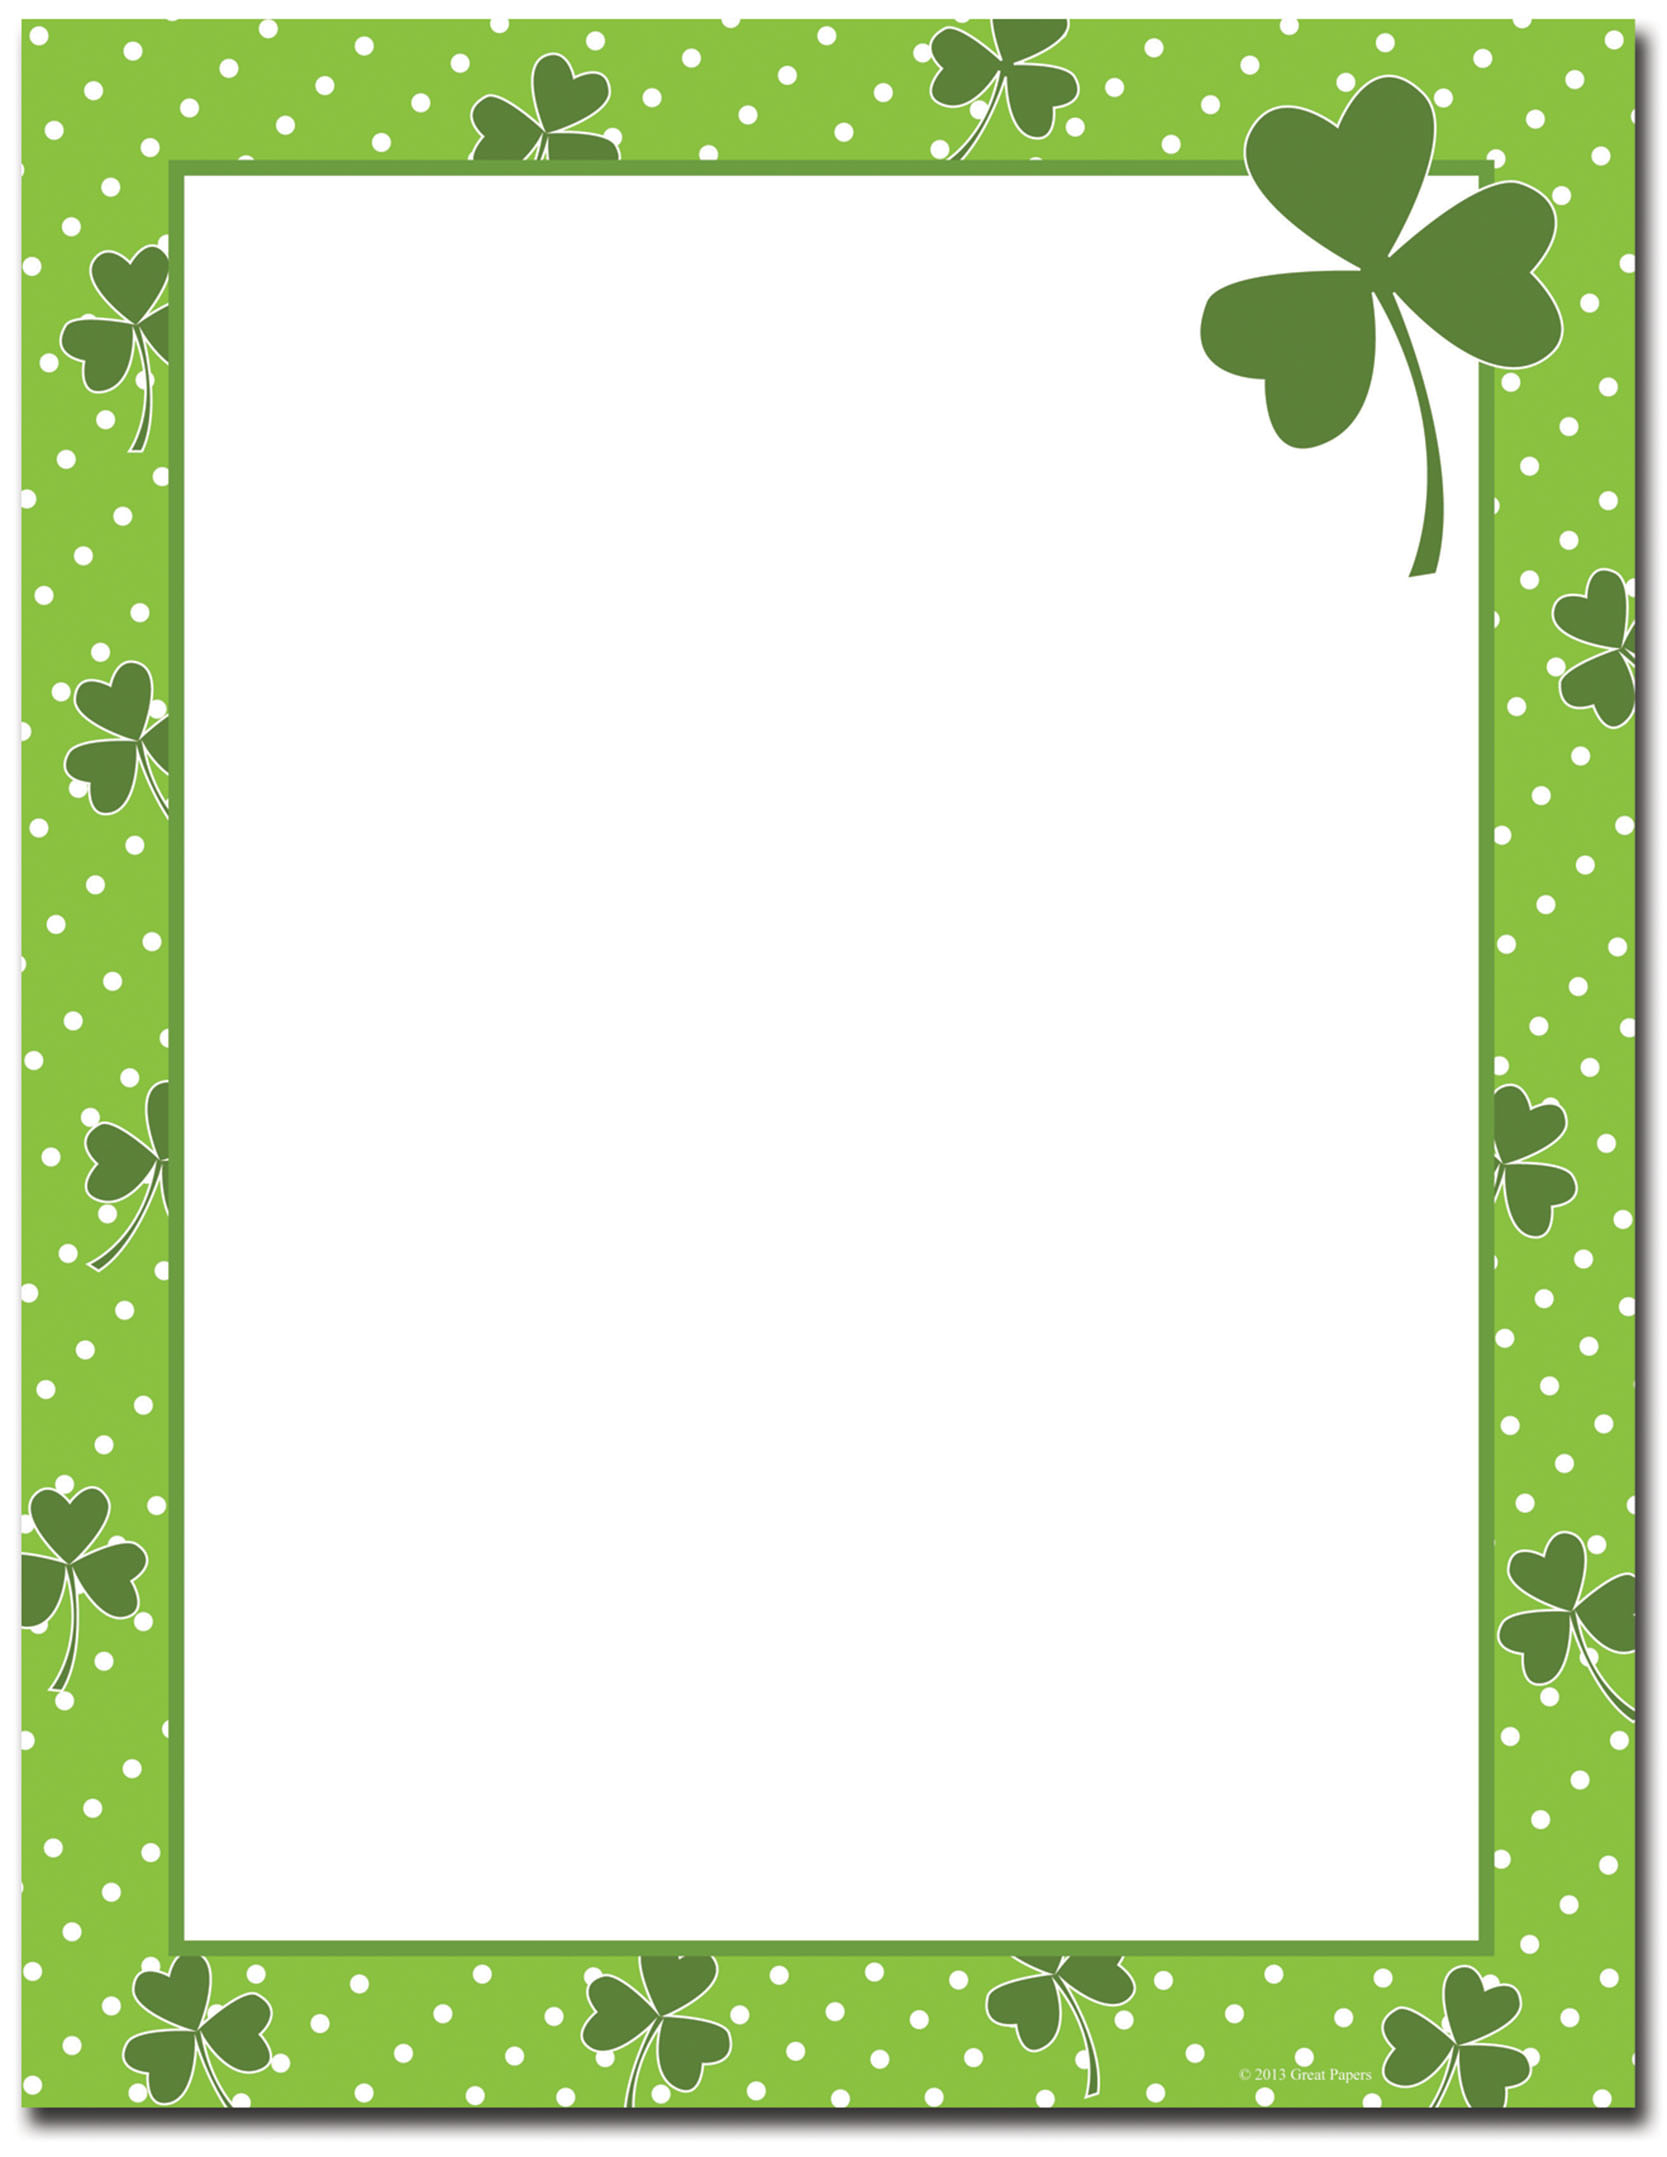 St Patricks Day Clipart Border Collection - Free Printable St Patricks Day Stationery